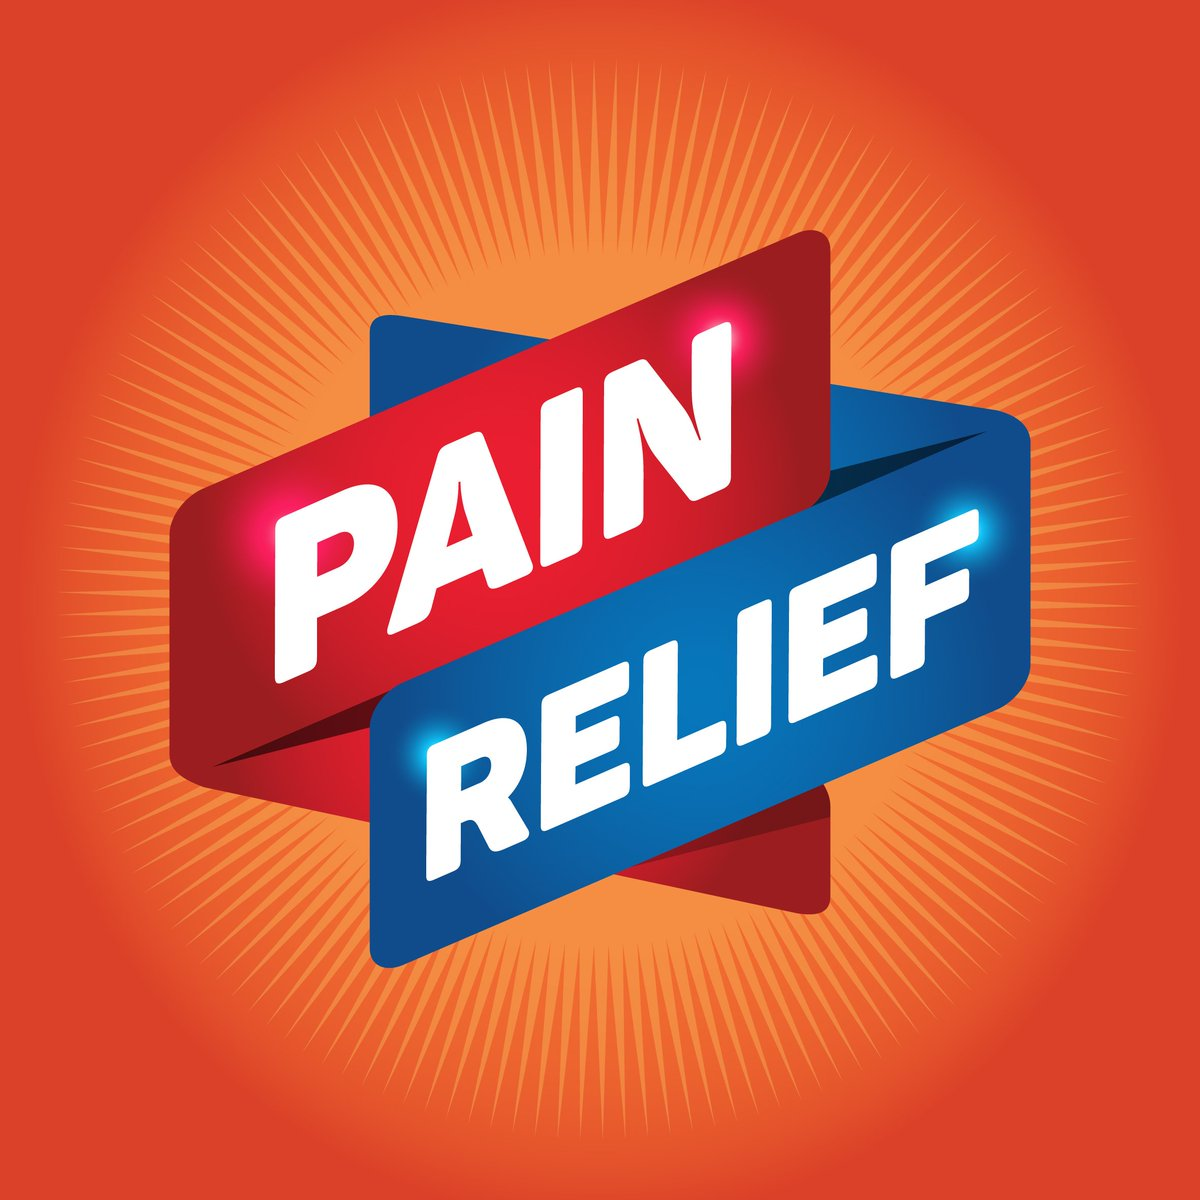 Don&#39;t suffer any longer! Check out some of the best #painmanagement tools to help you manage your pain.  https://www. mountainside-medical.com/collections/pa in-management &nbsp; … <br>http://pic.twitter.com/sneFxBL5a6